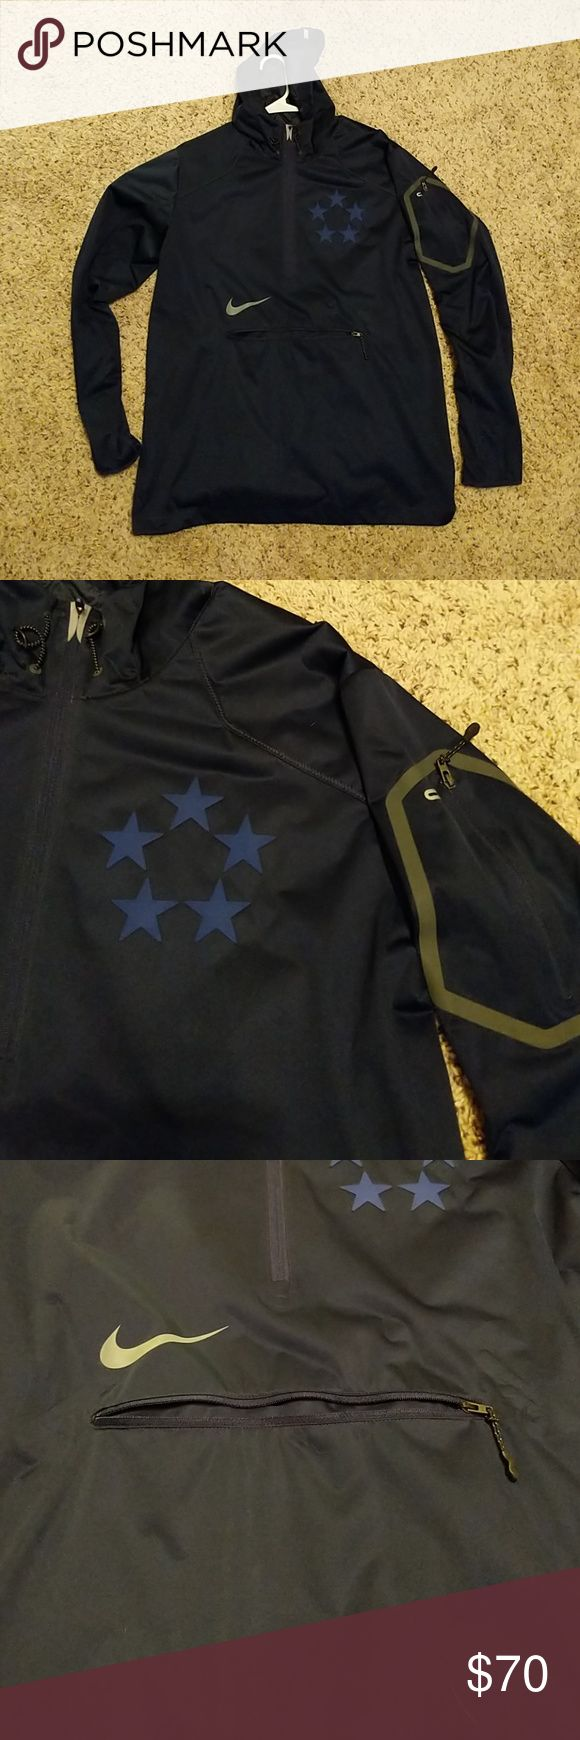 Nike Rain Jacket Dark blue Nike rain jacket. Perfect condition. Nike Jackets & Coats Raincoats